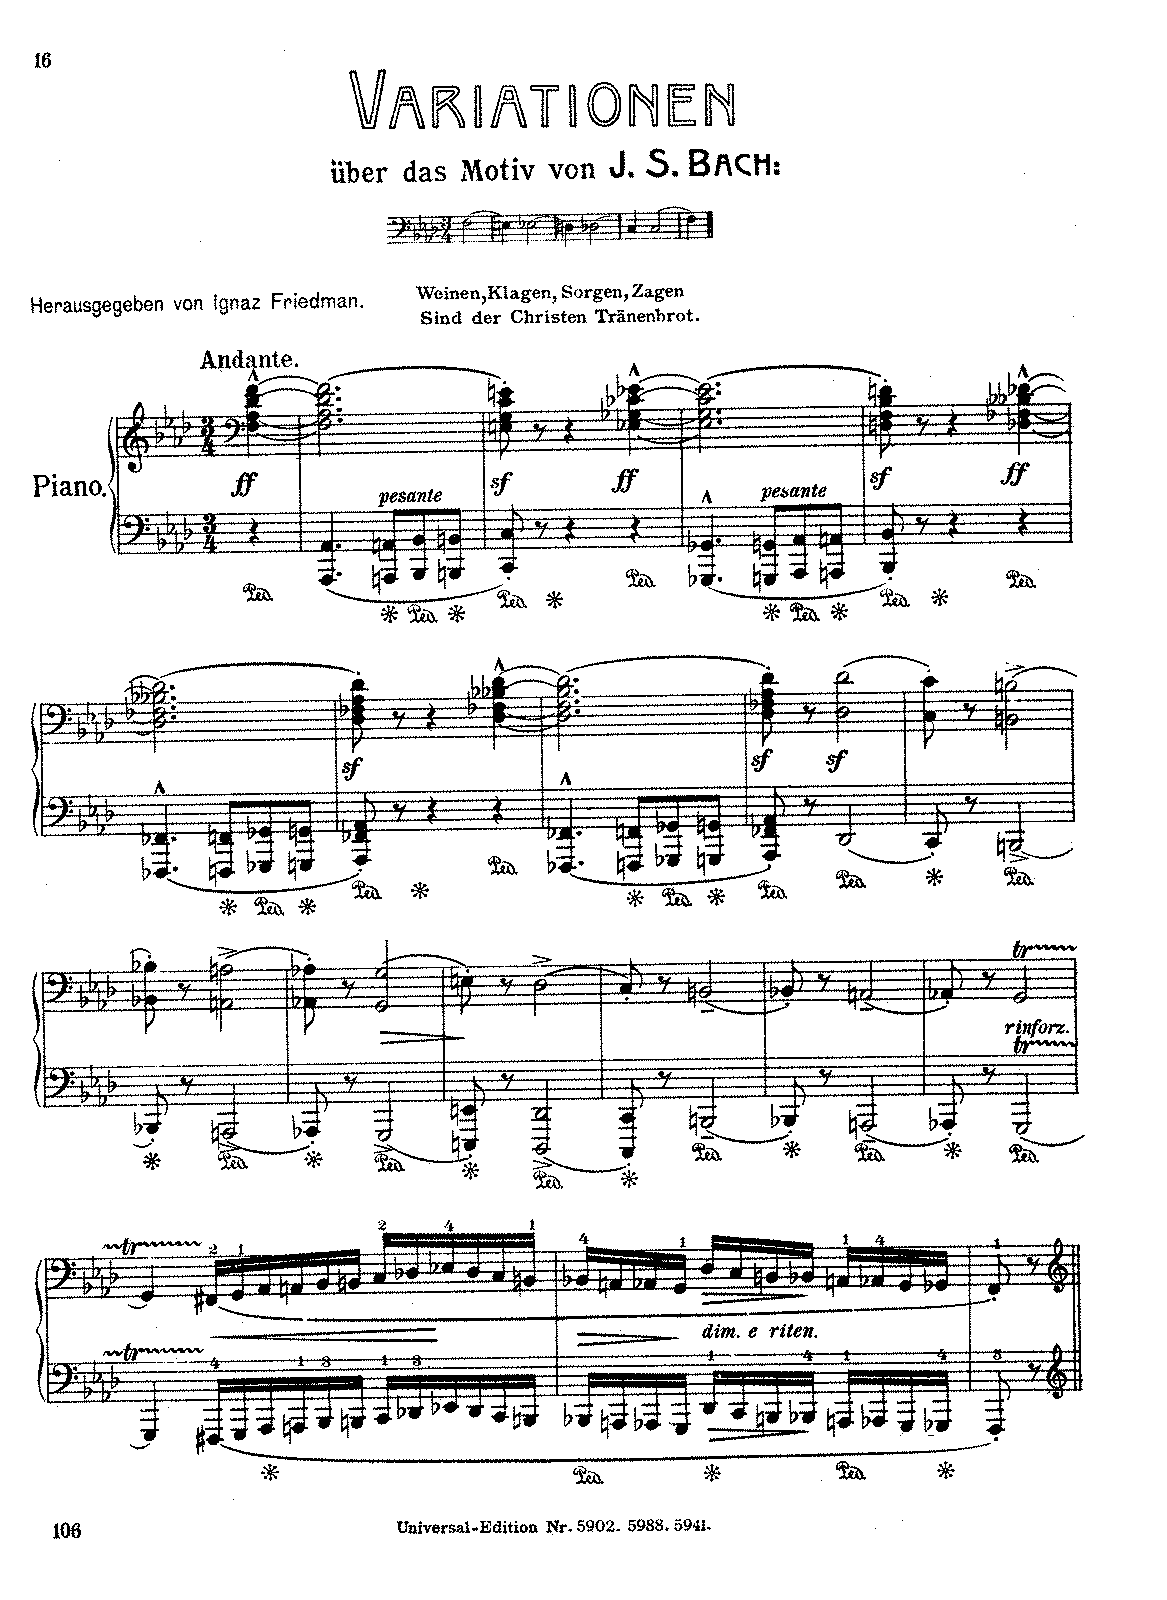 Liszt - S180 Variations on a theme of Bach (universal).pdf